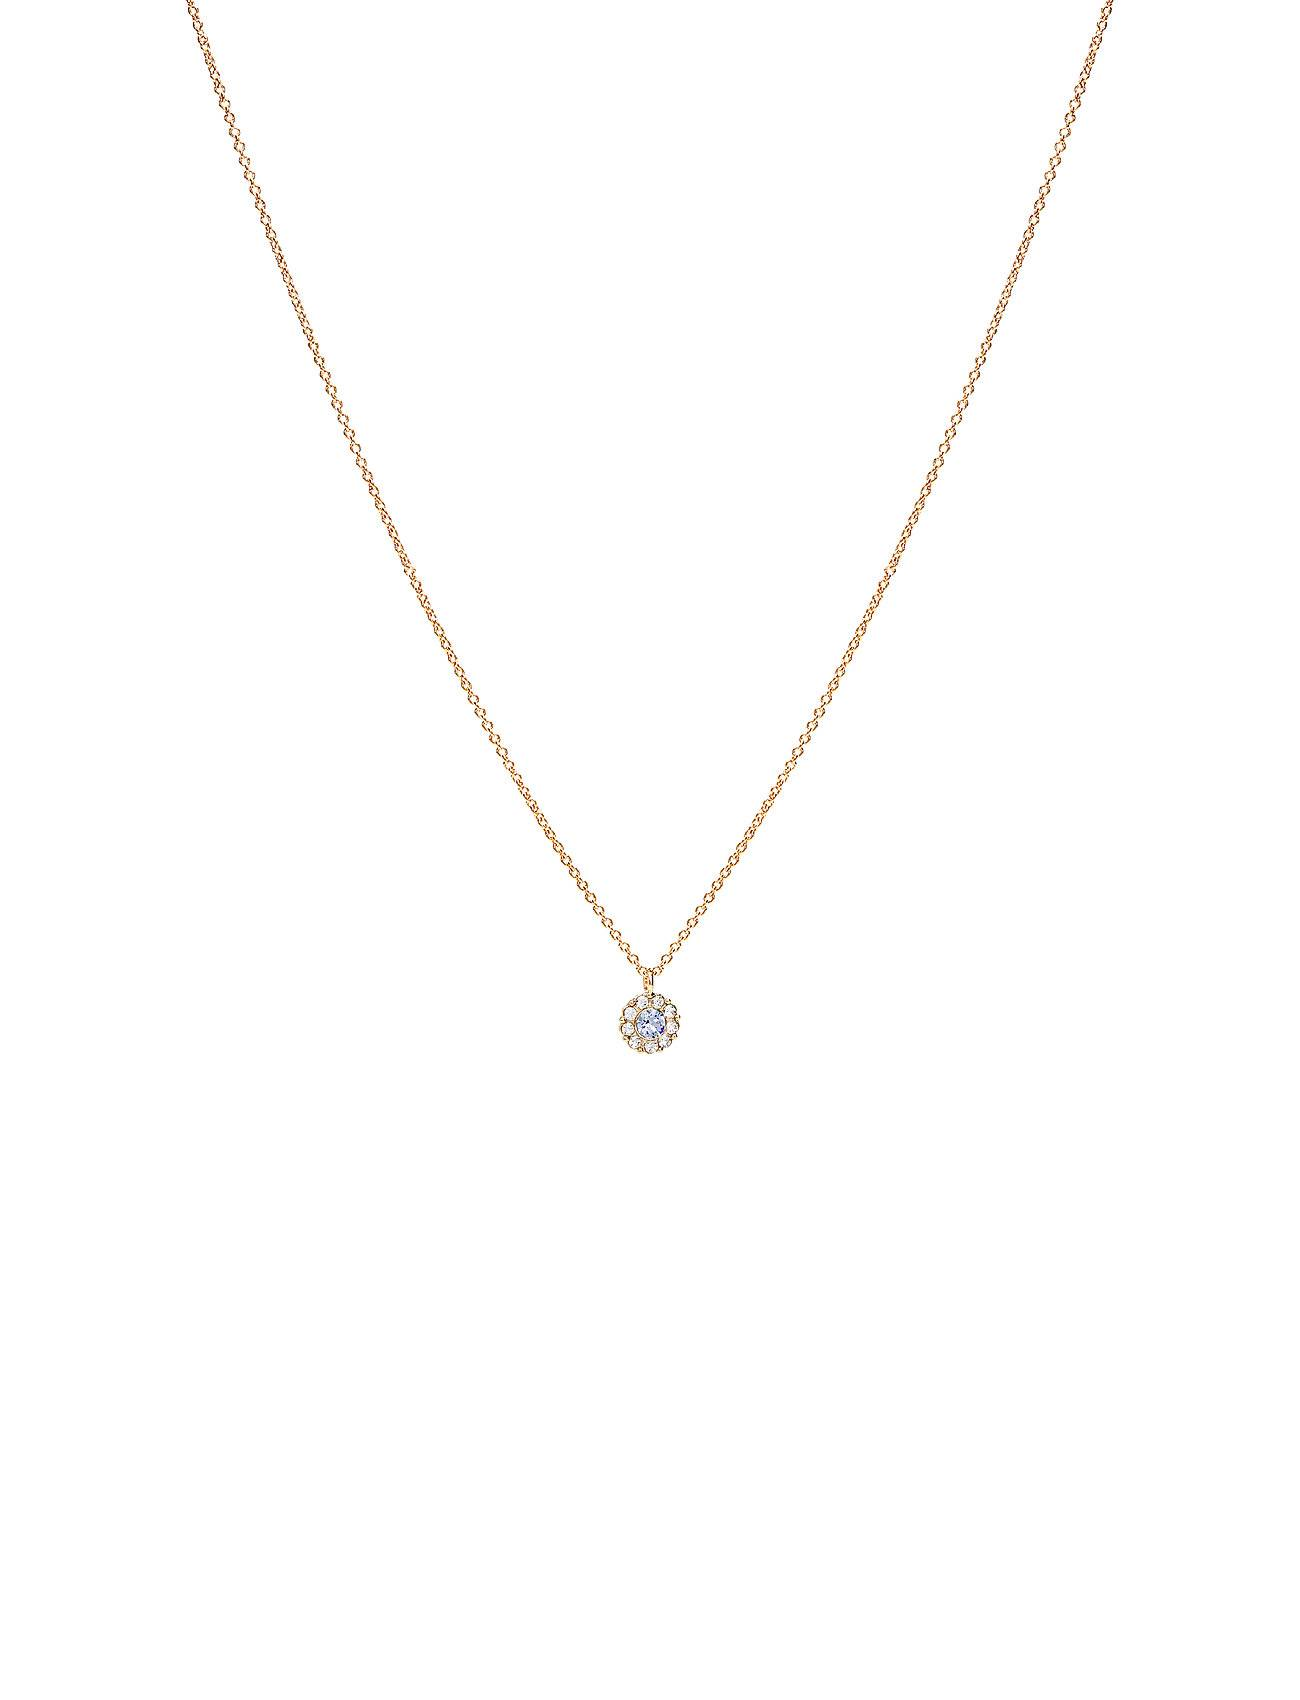 LILY AND ROSE Petite Miss Sofia Necklace - Light Sapphire Accessories Jewellery Necklaces Dainty Necklaces Sininen LILY AND ROSE